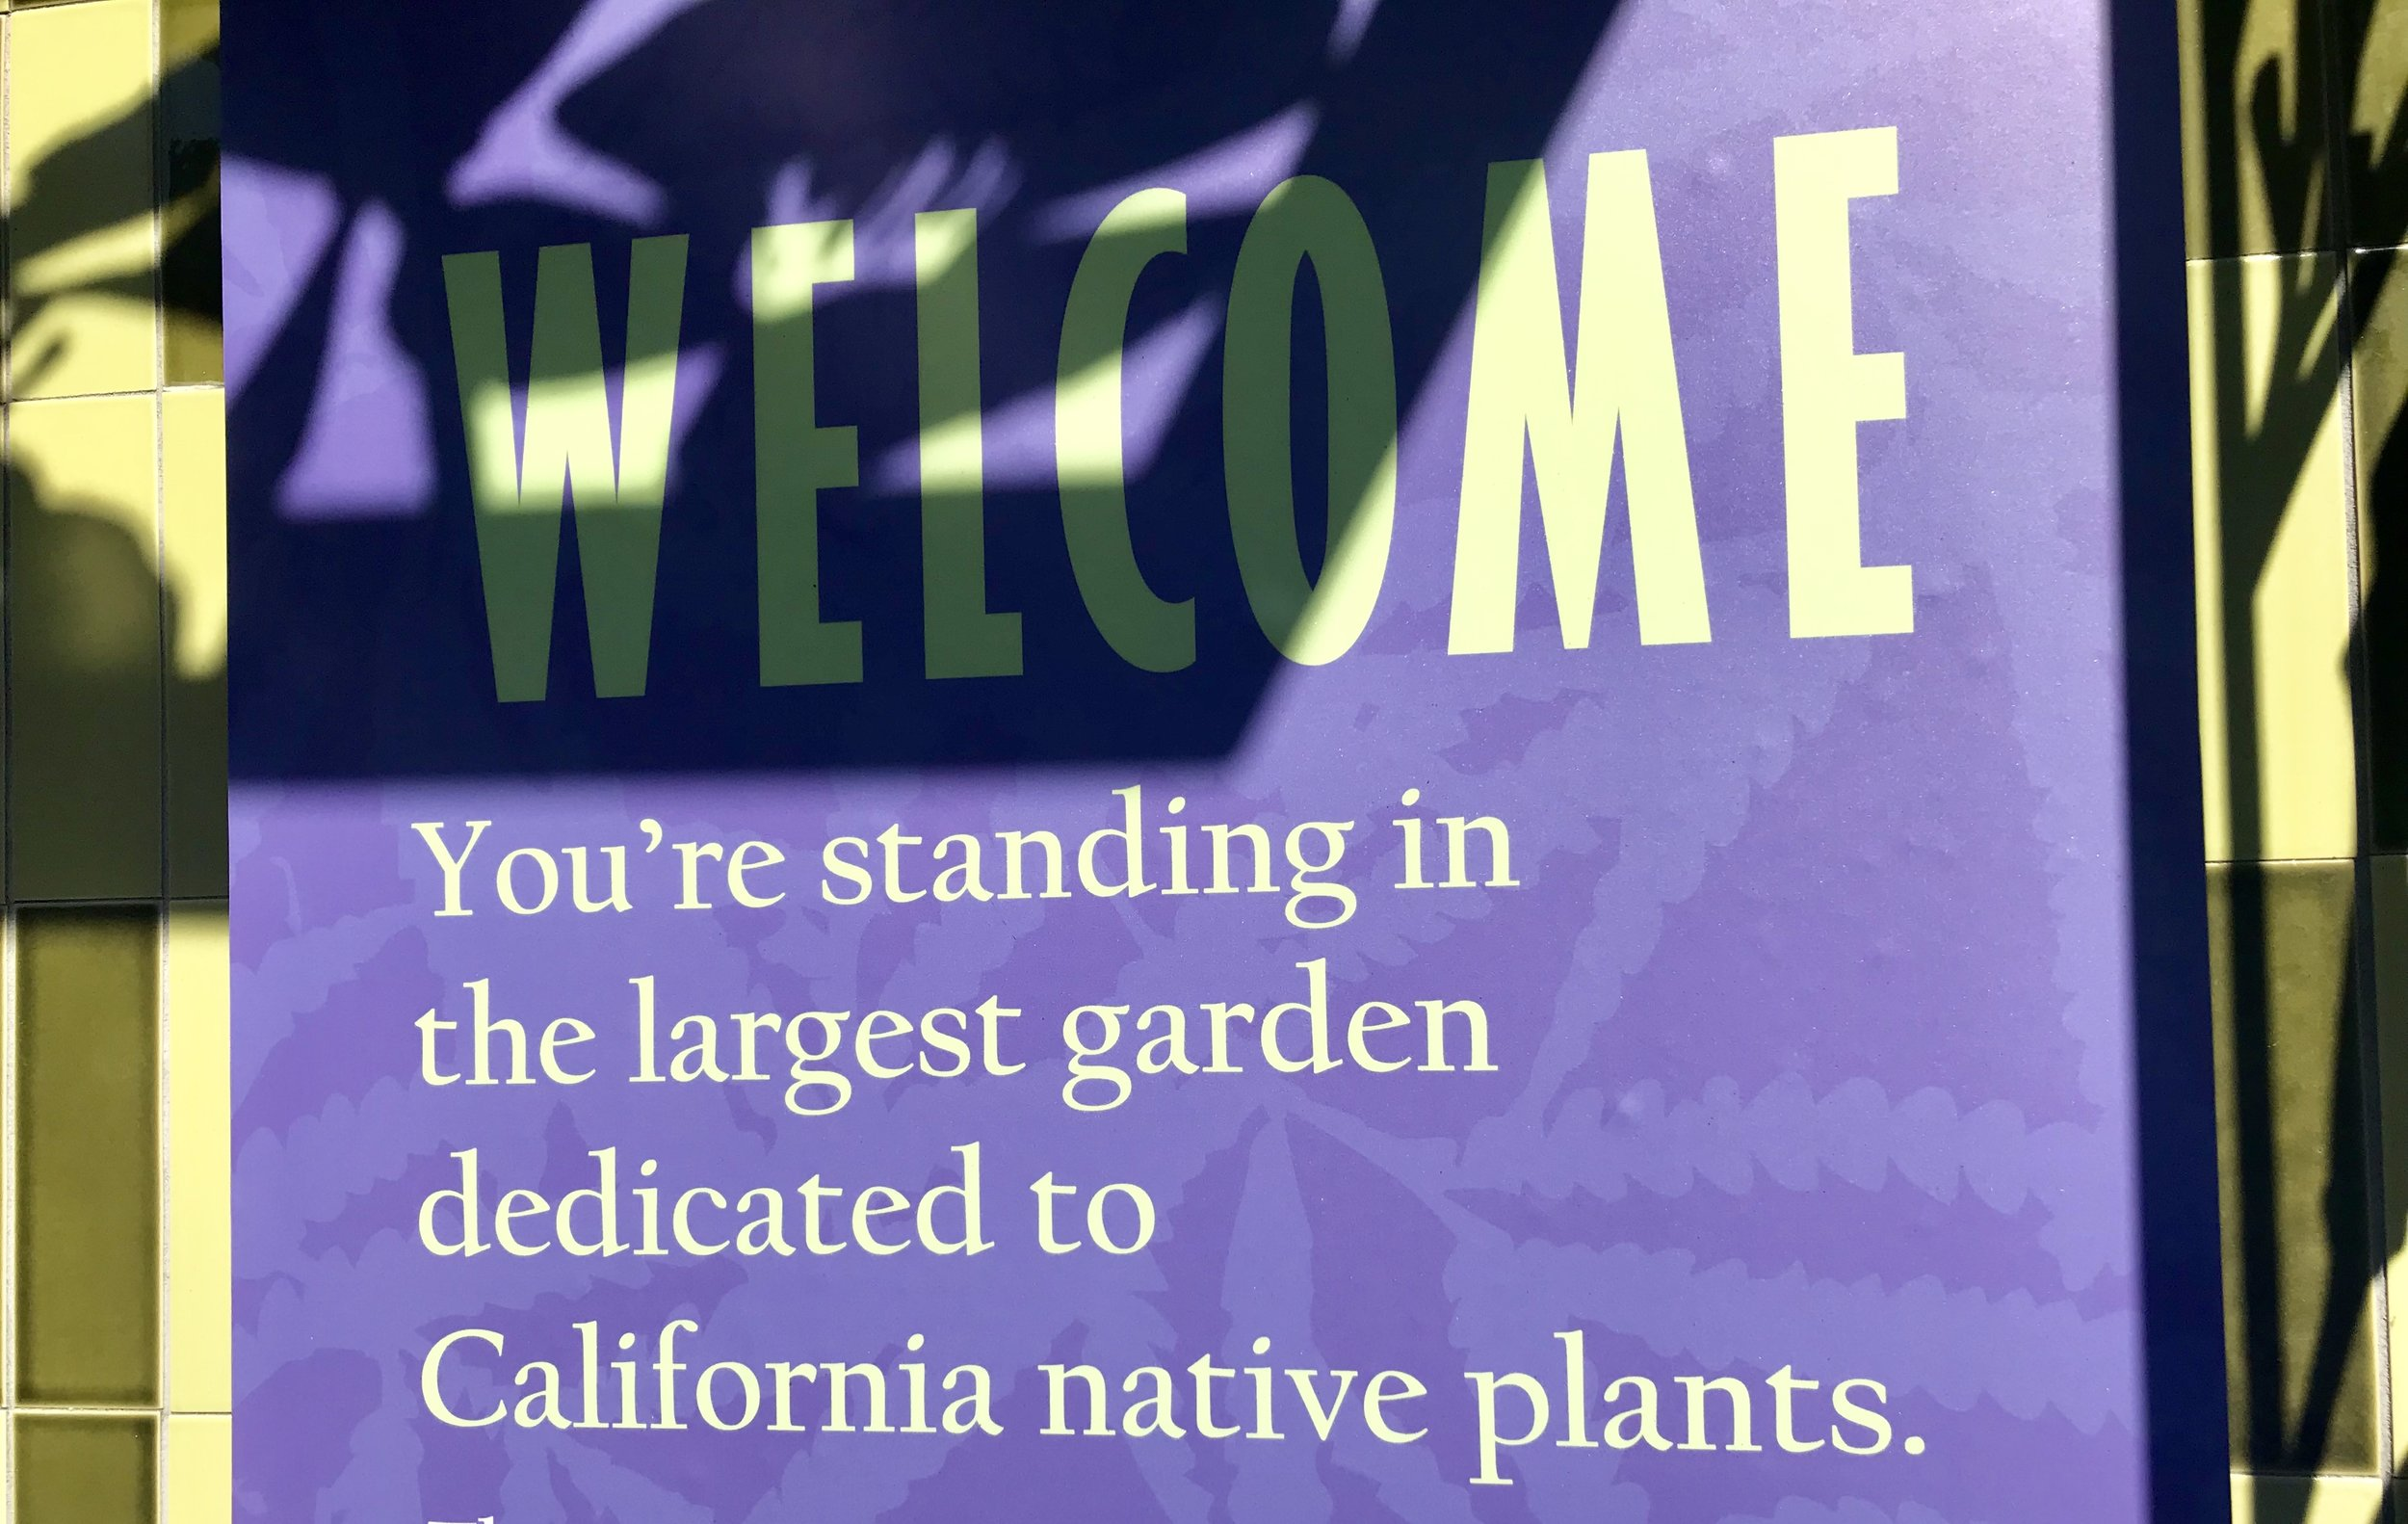 A welcome sign greets visitors as they enter the garden. Photos by Paris Barraza.